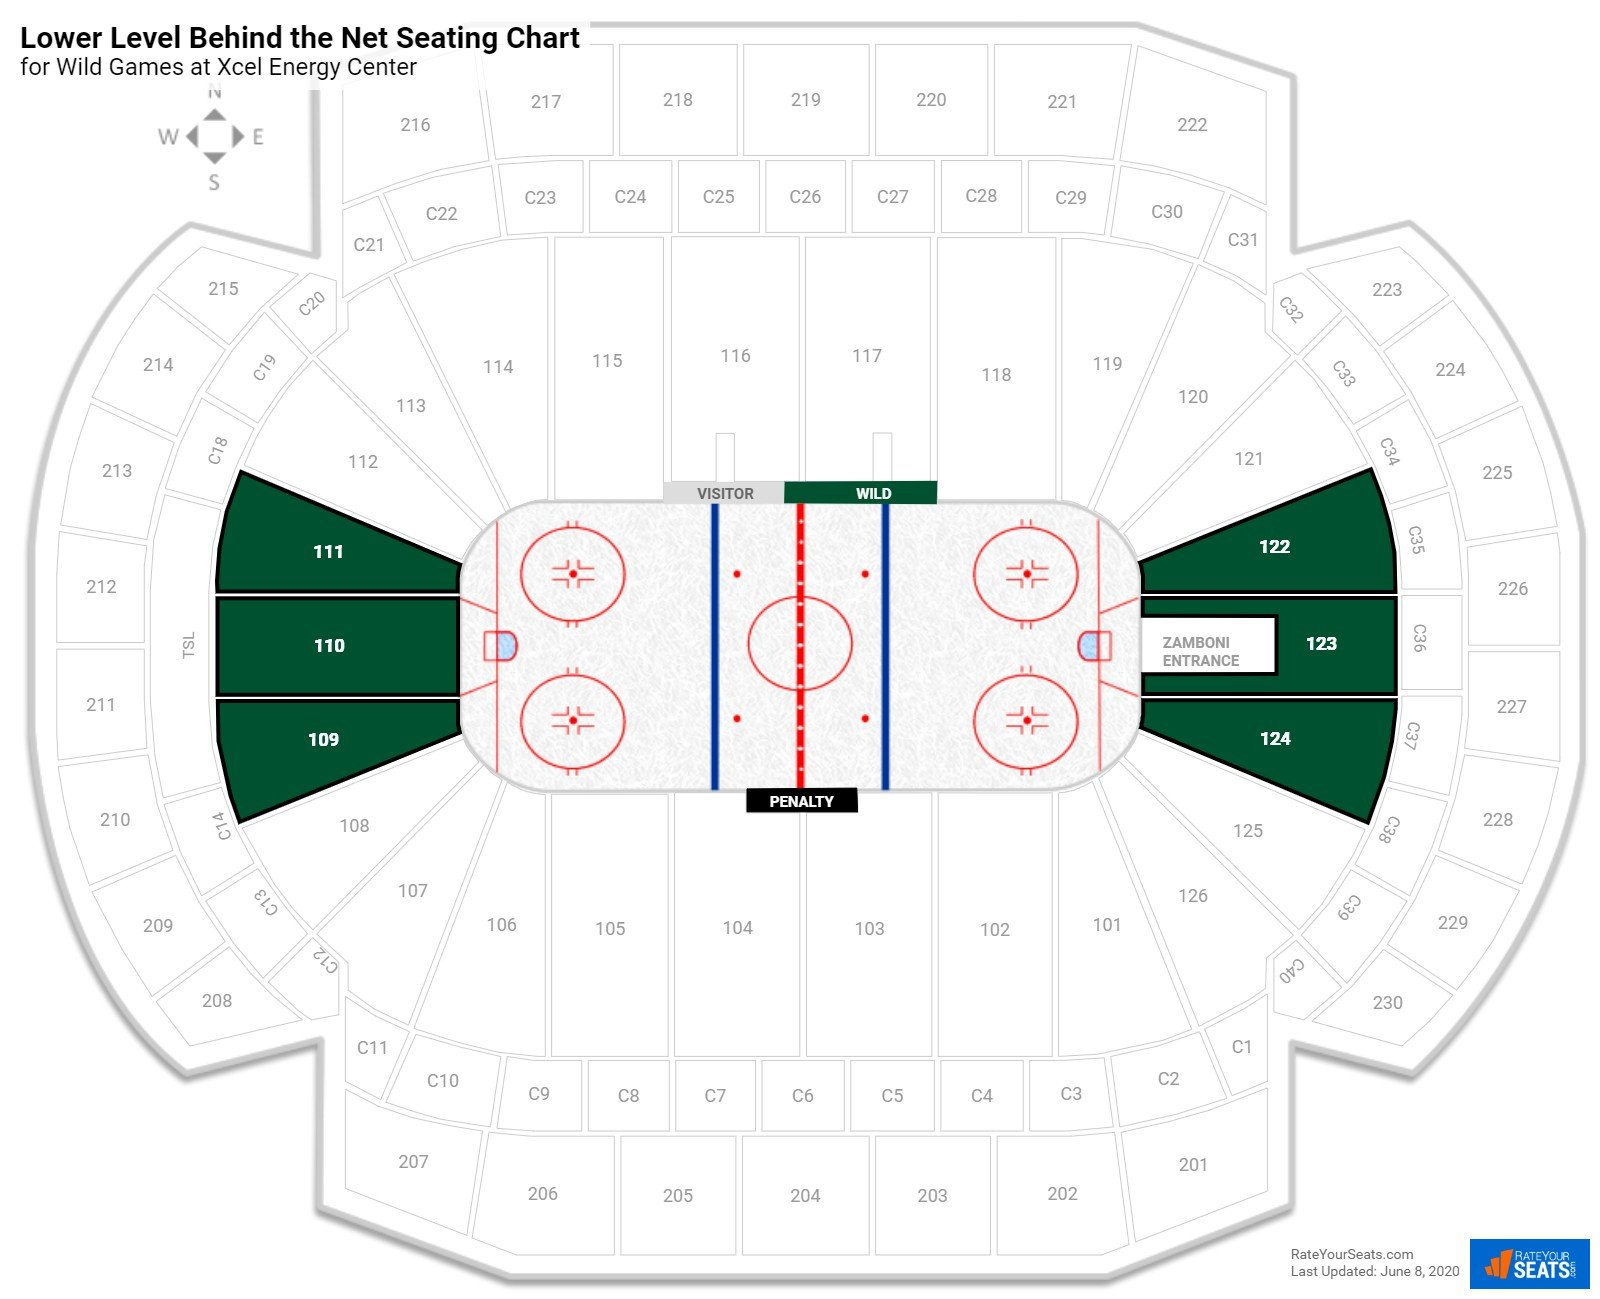 Xcel Energy Center Lower Level Behind the Net seating chart